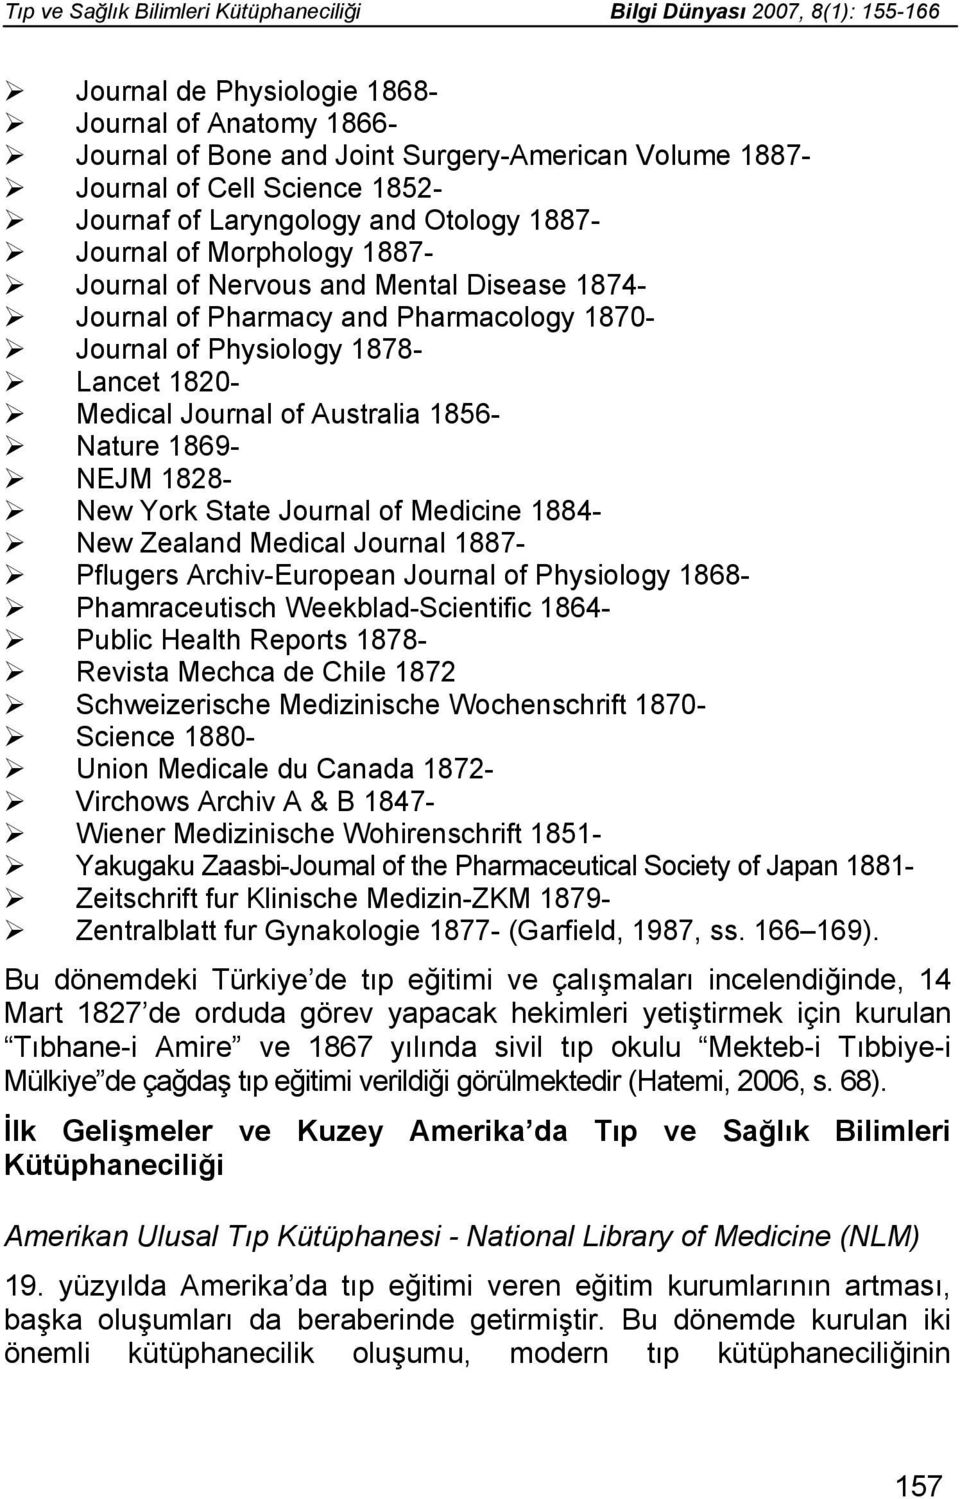 Lancet 1820- Medical Journal of Australia 1856- Nature 1869- NEJM 1828- New York State Journal of Medicine 1884- New Zealand Medical Journal 1887- Pflugers Archiv-European Journal of Physiology 1868-